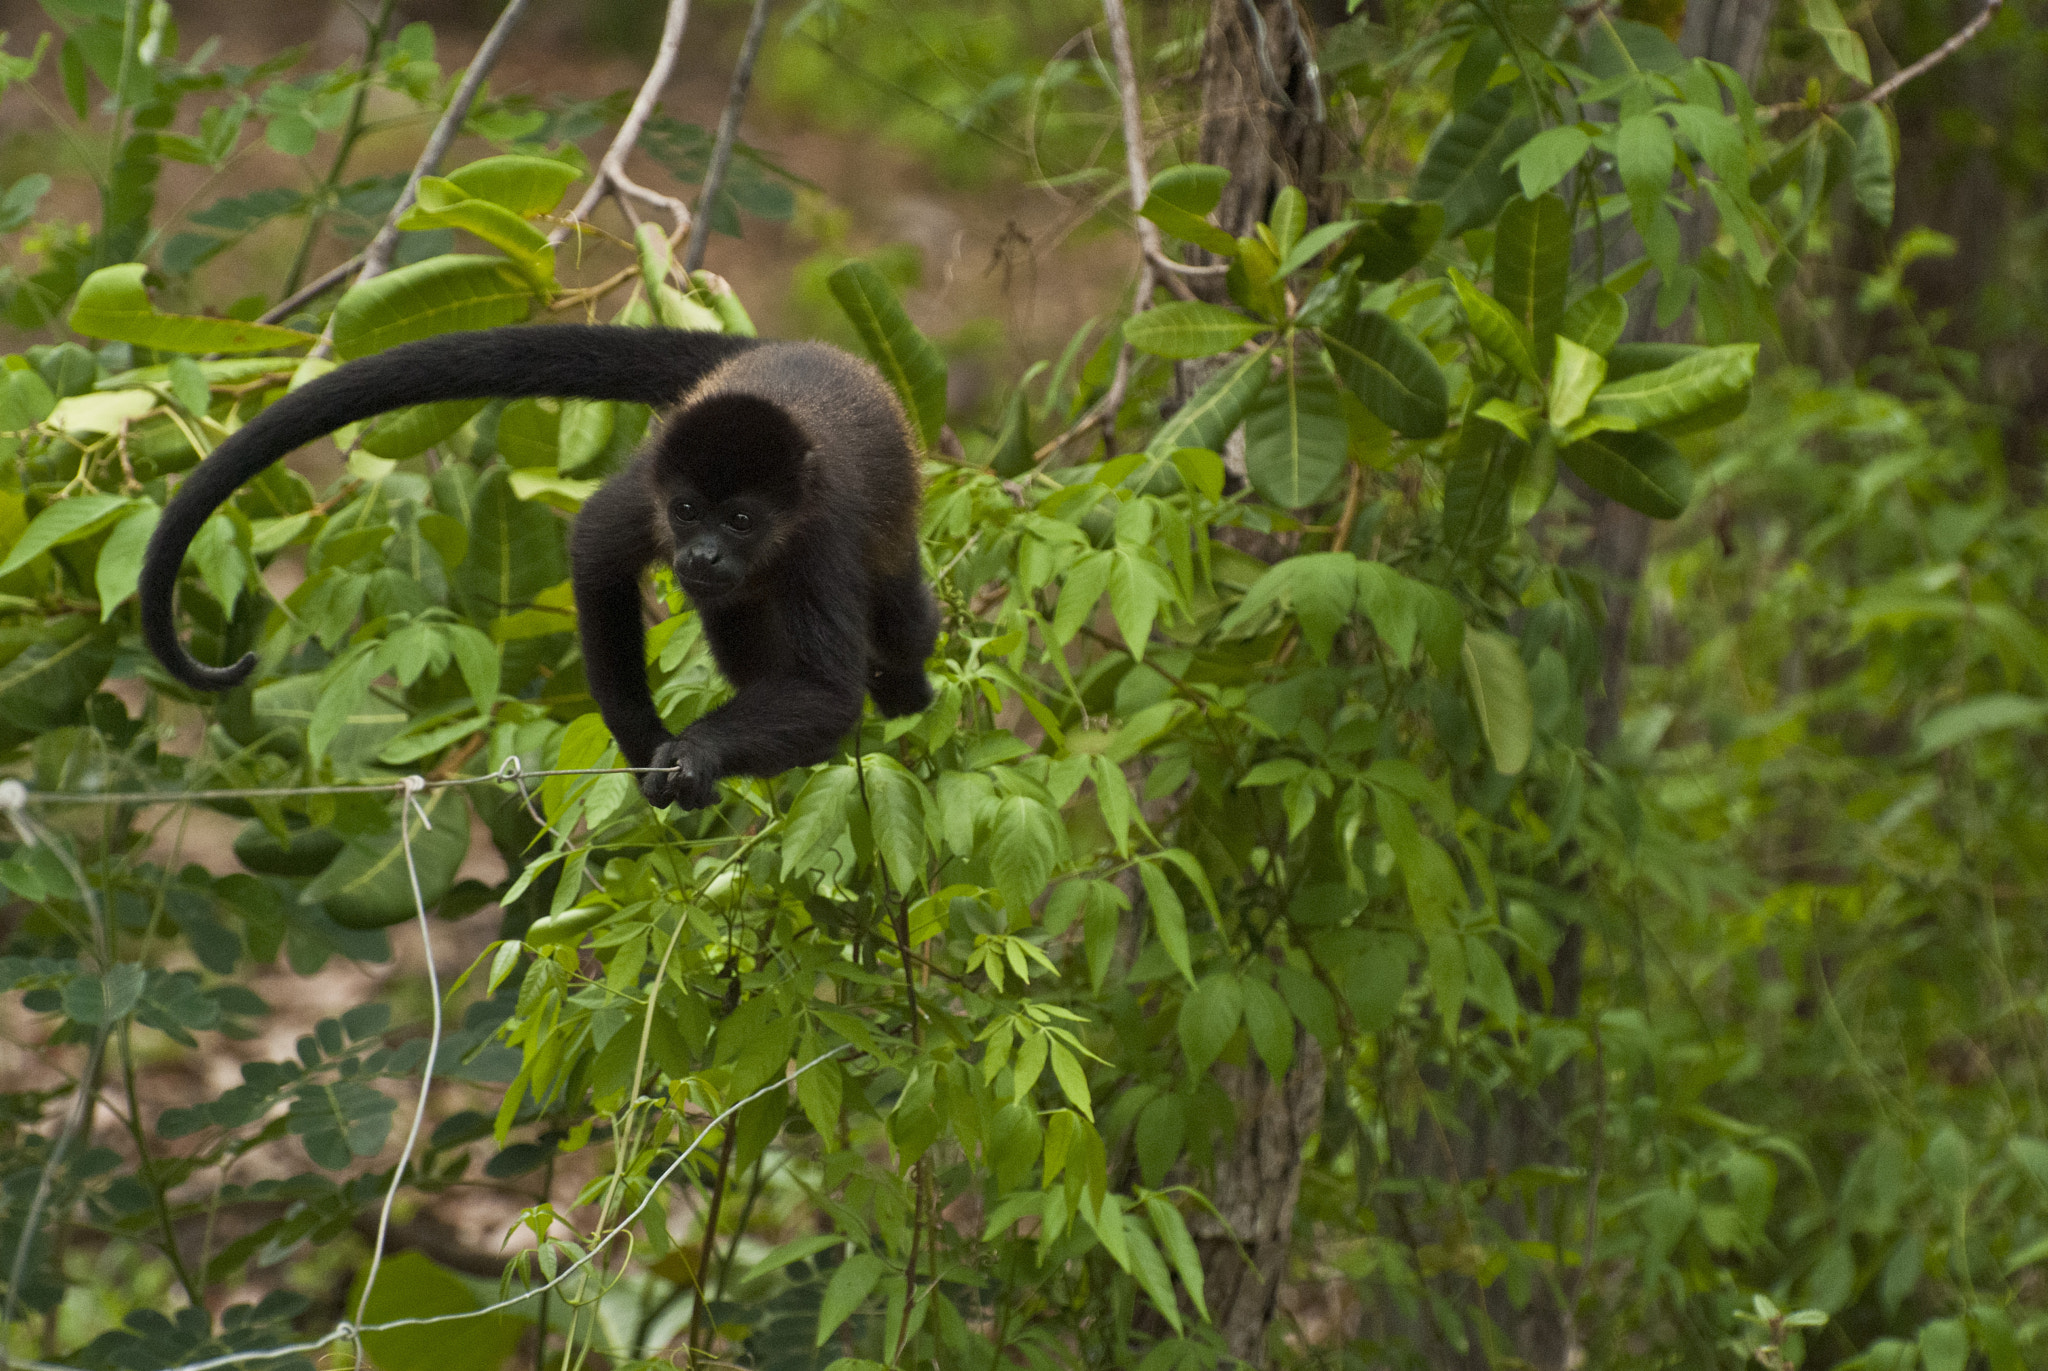 Photograph Tightrope Howler Monkey by Jordan Hoffman on 500px